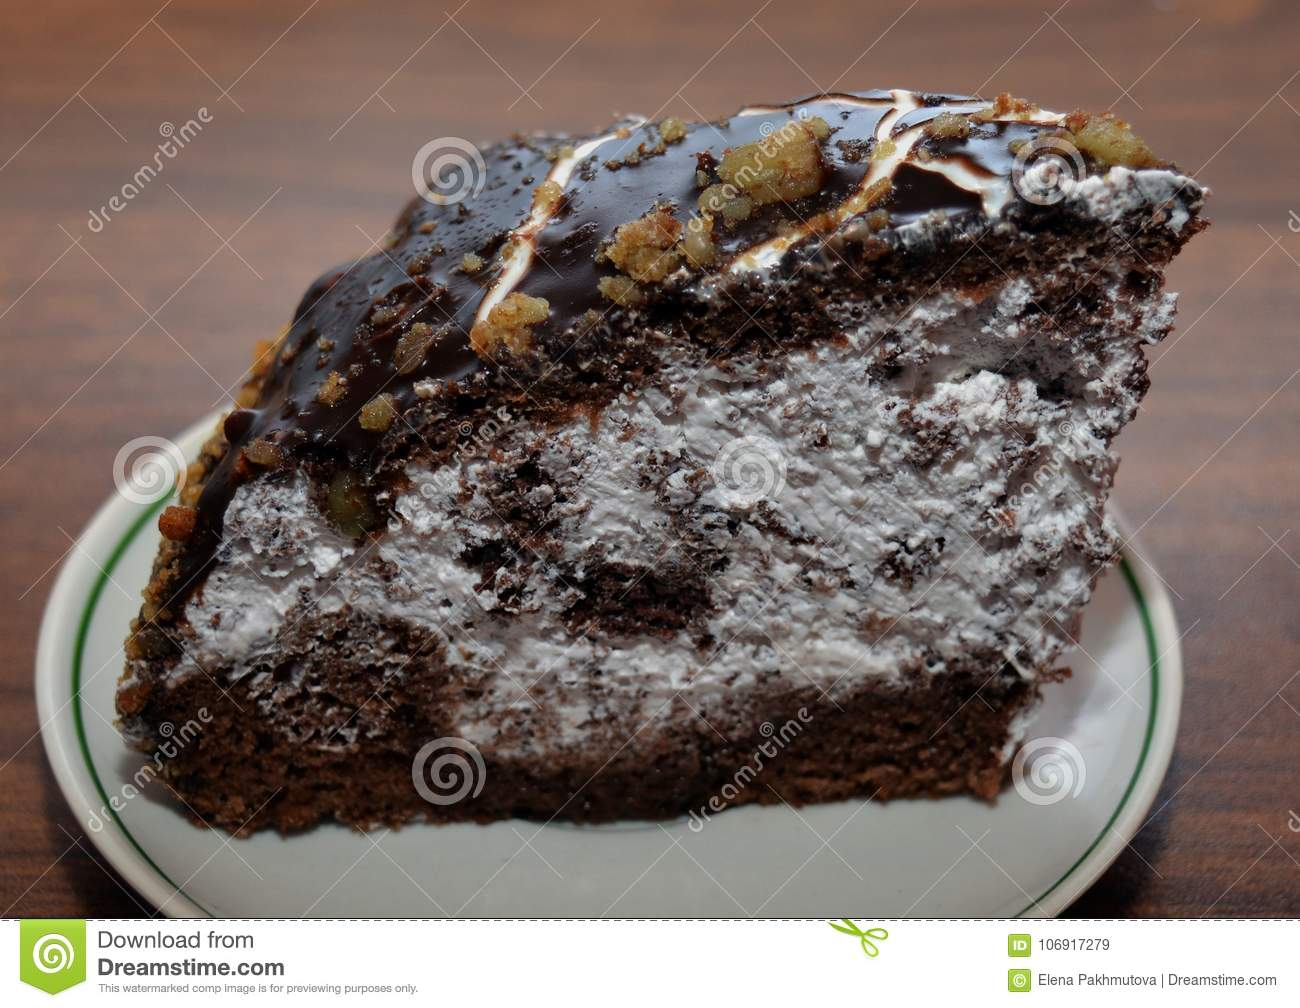 Cake Chocolate Dessert Food Sweet Plate Delicious Brown